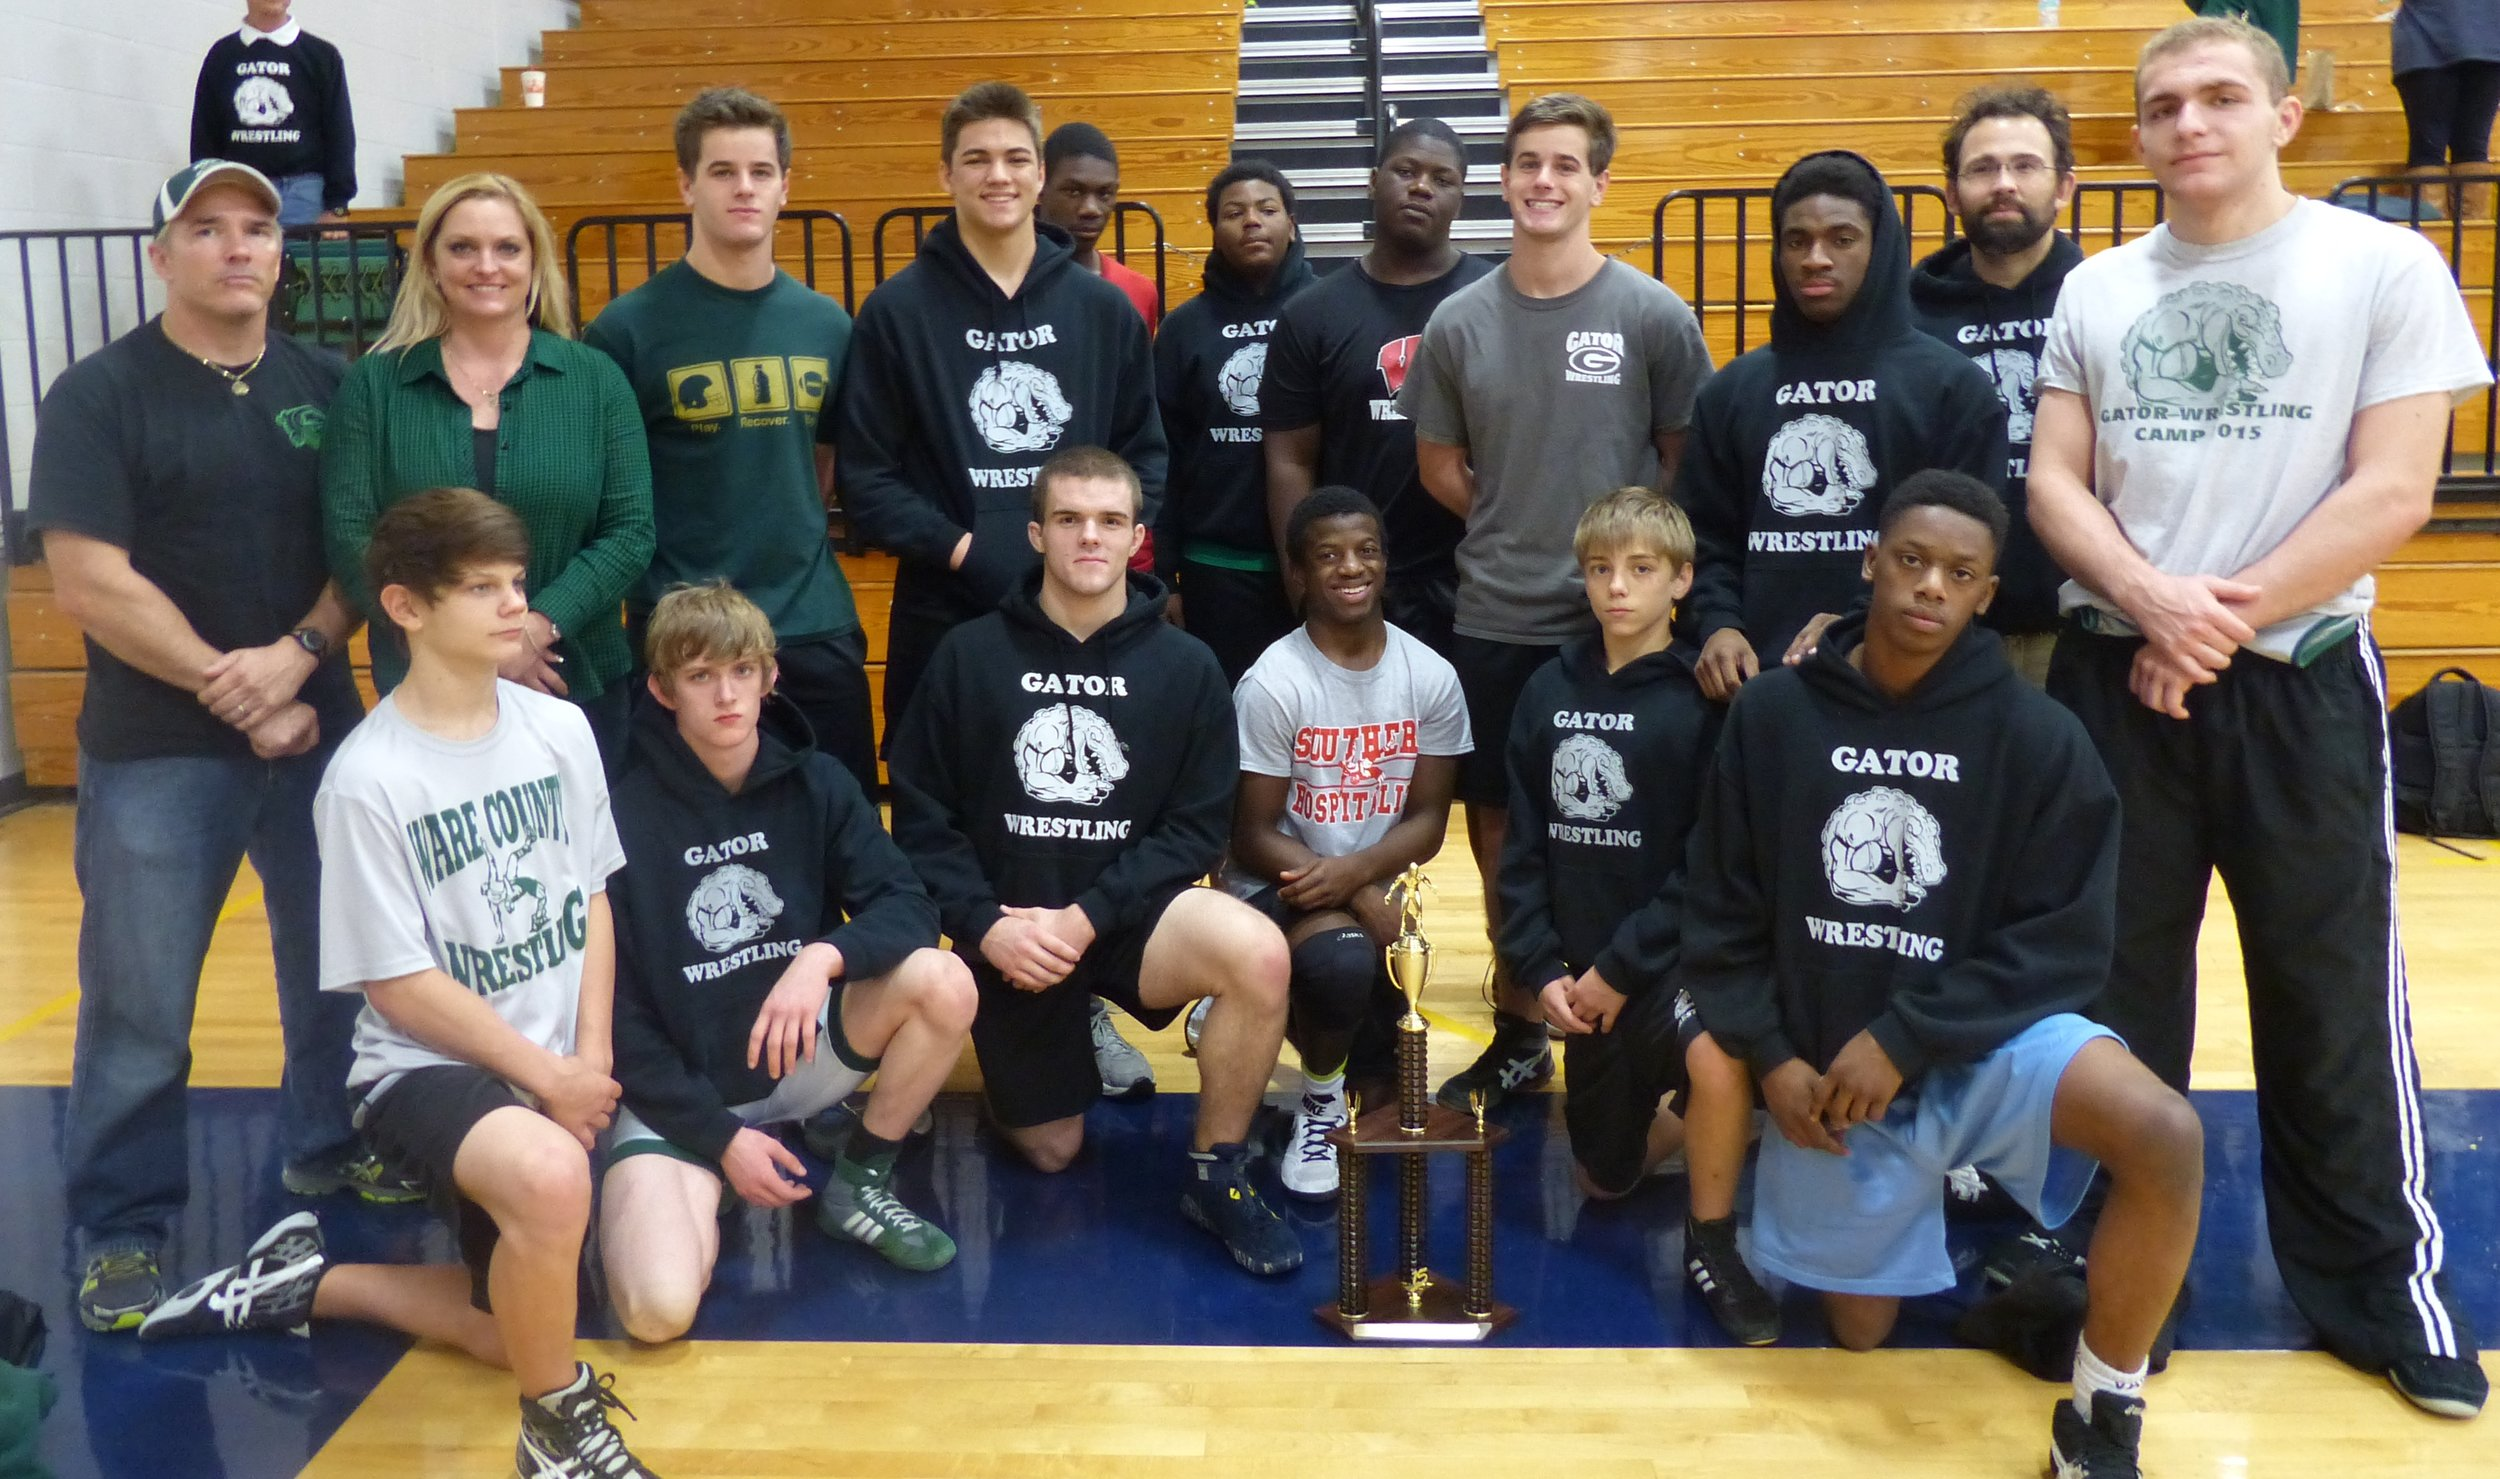 JEFF DAVIS YELLOW JACKET DUALS